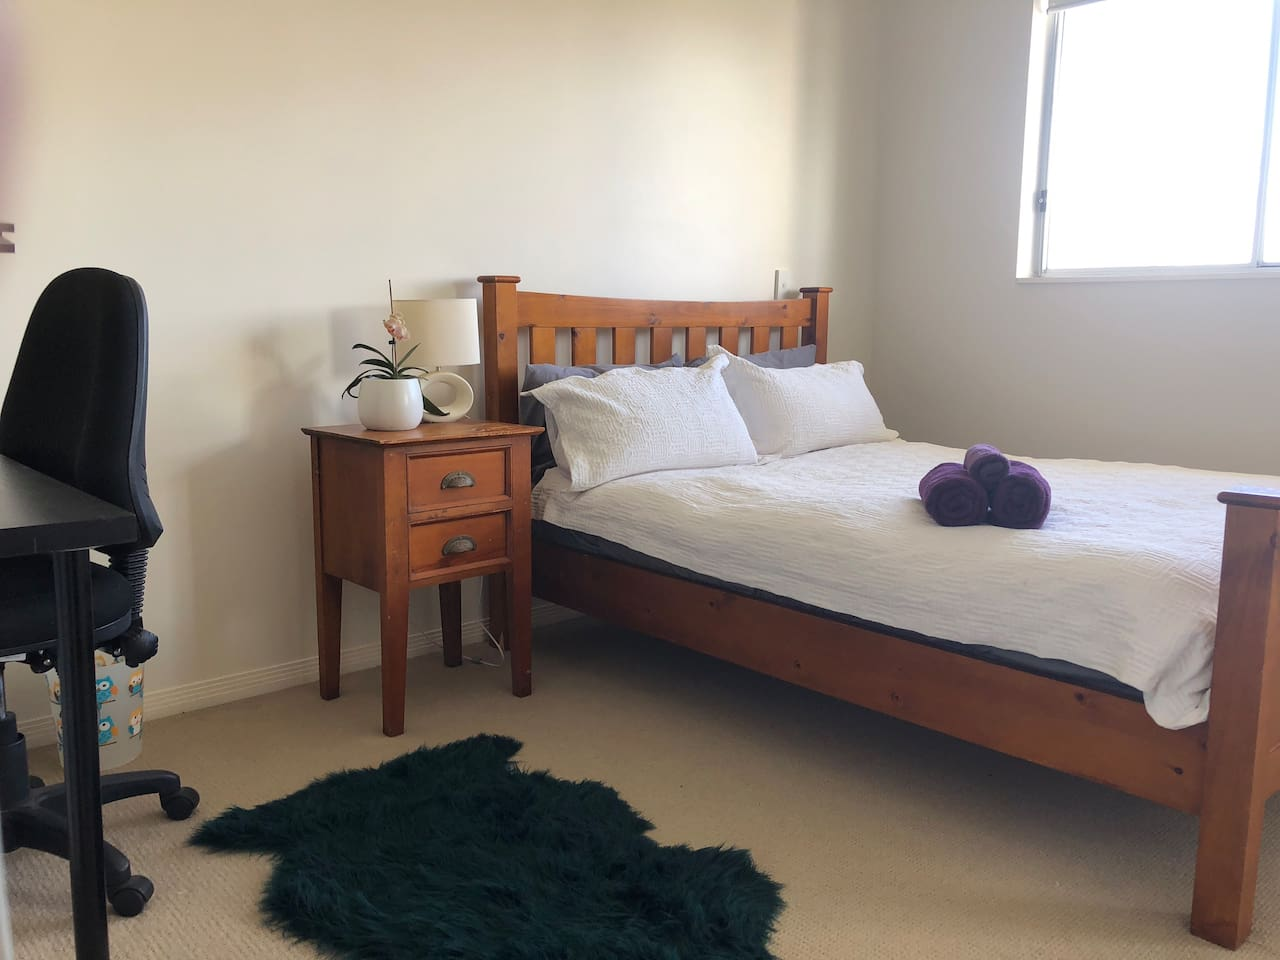 Double sized room with double bed, double wardrobe, shelf, drawers and desk and chair.